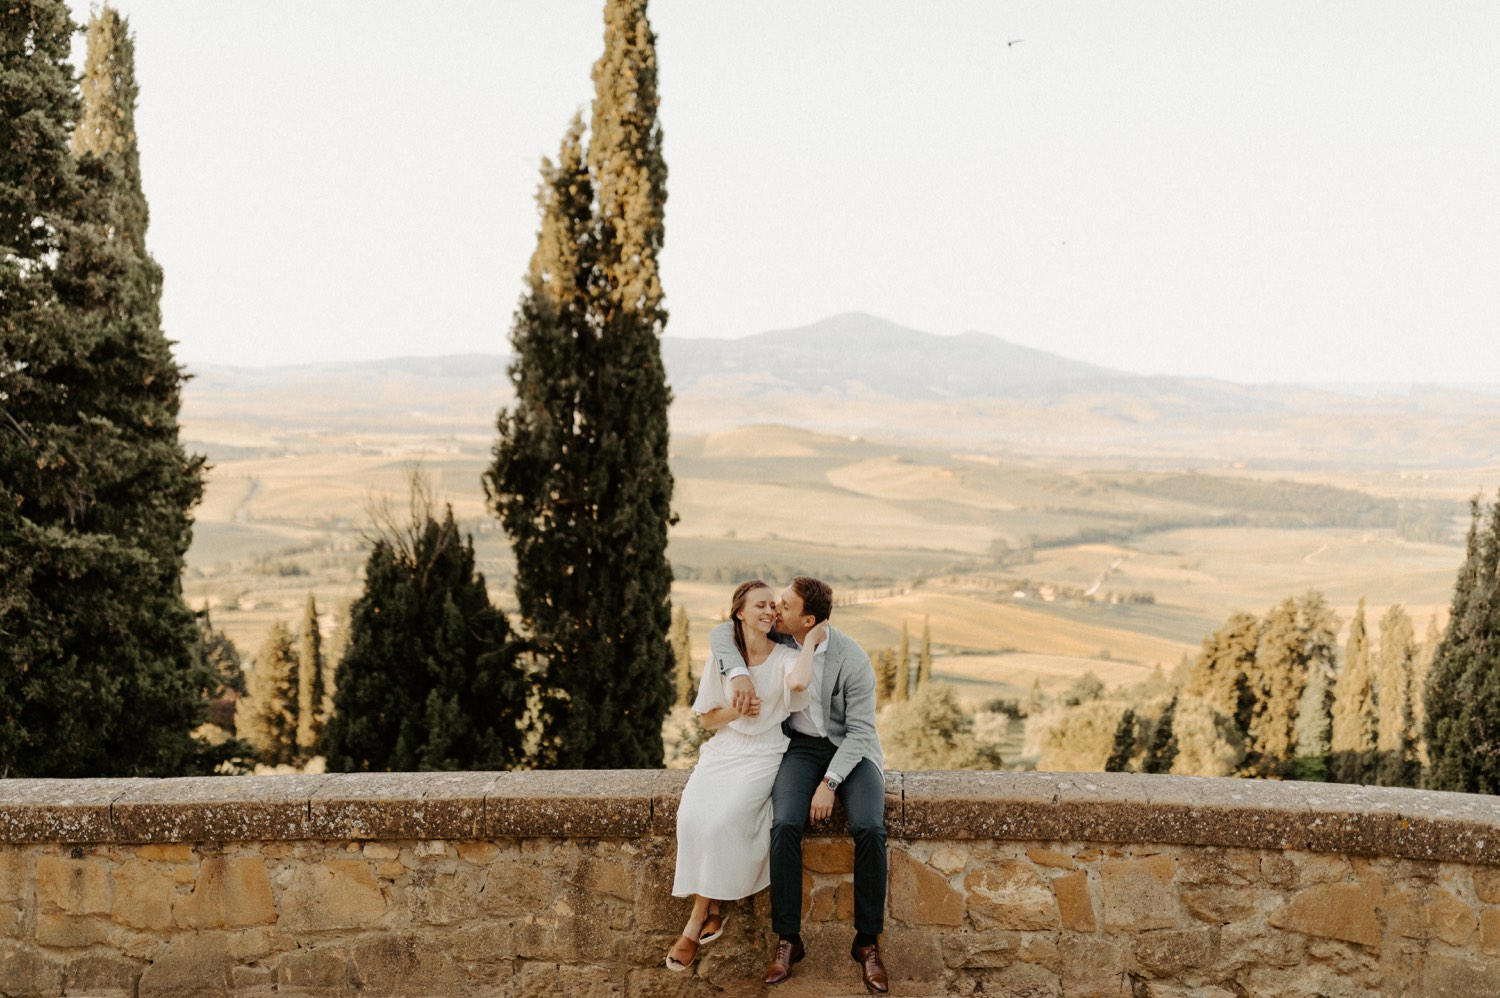 26_ali-dirk-pre-wedding-093_tuscany_siena_province_wedding_italy_photography.jpg